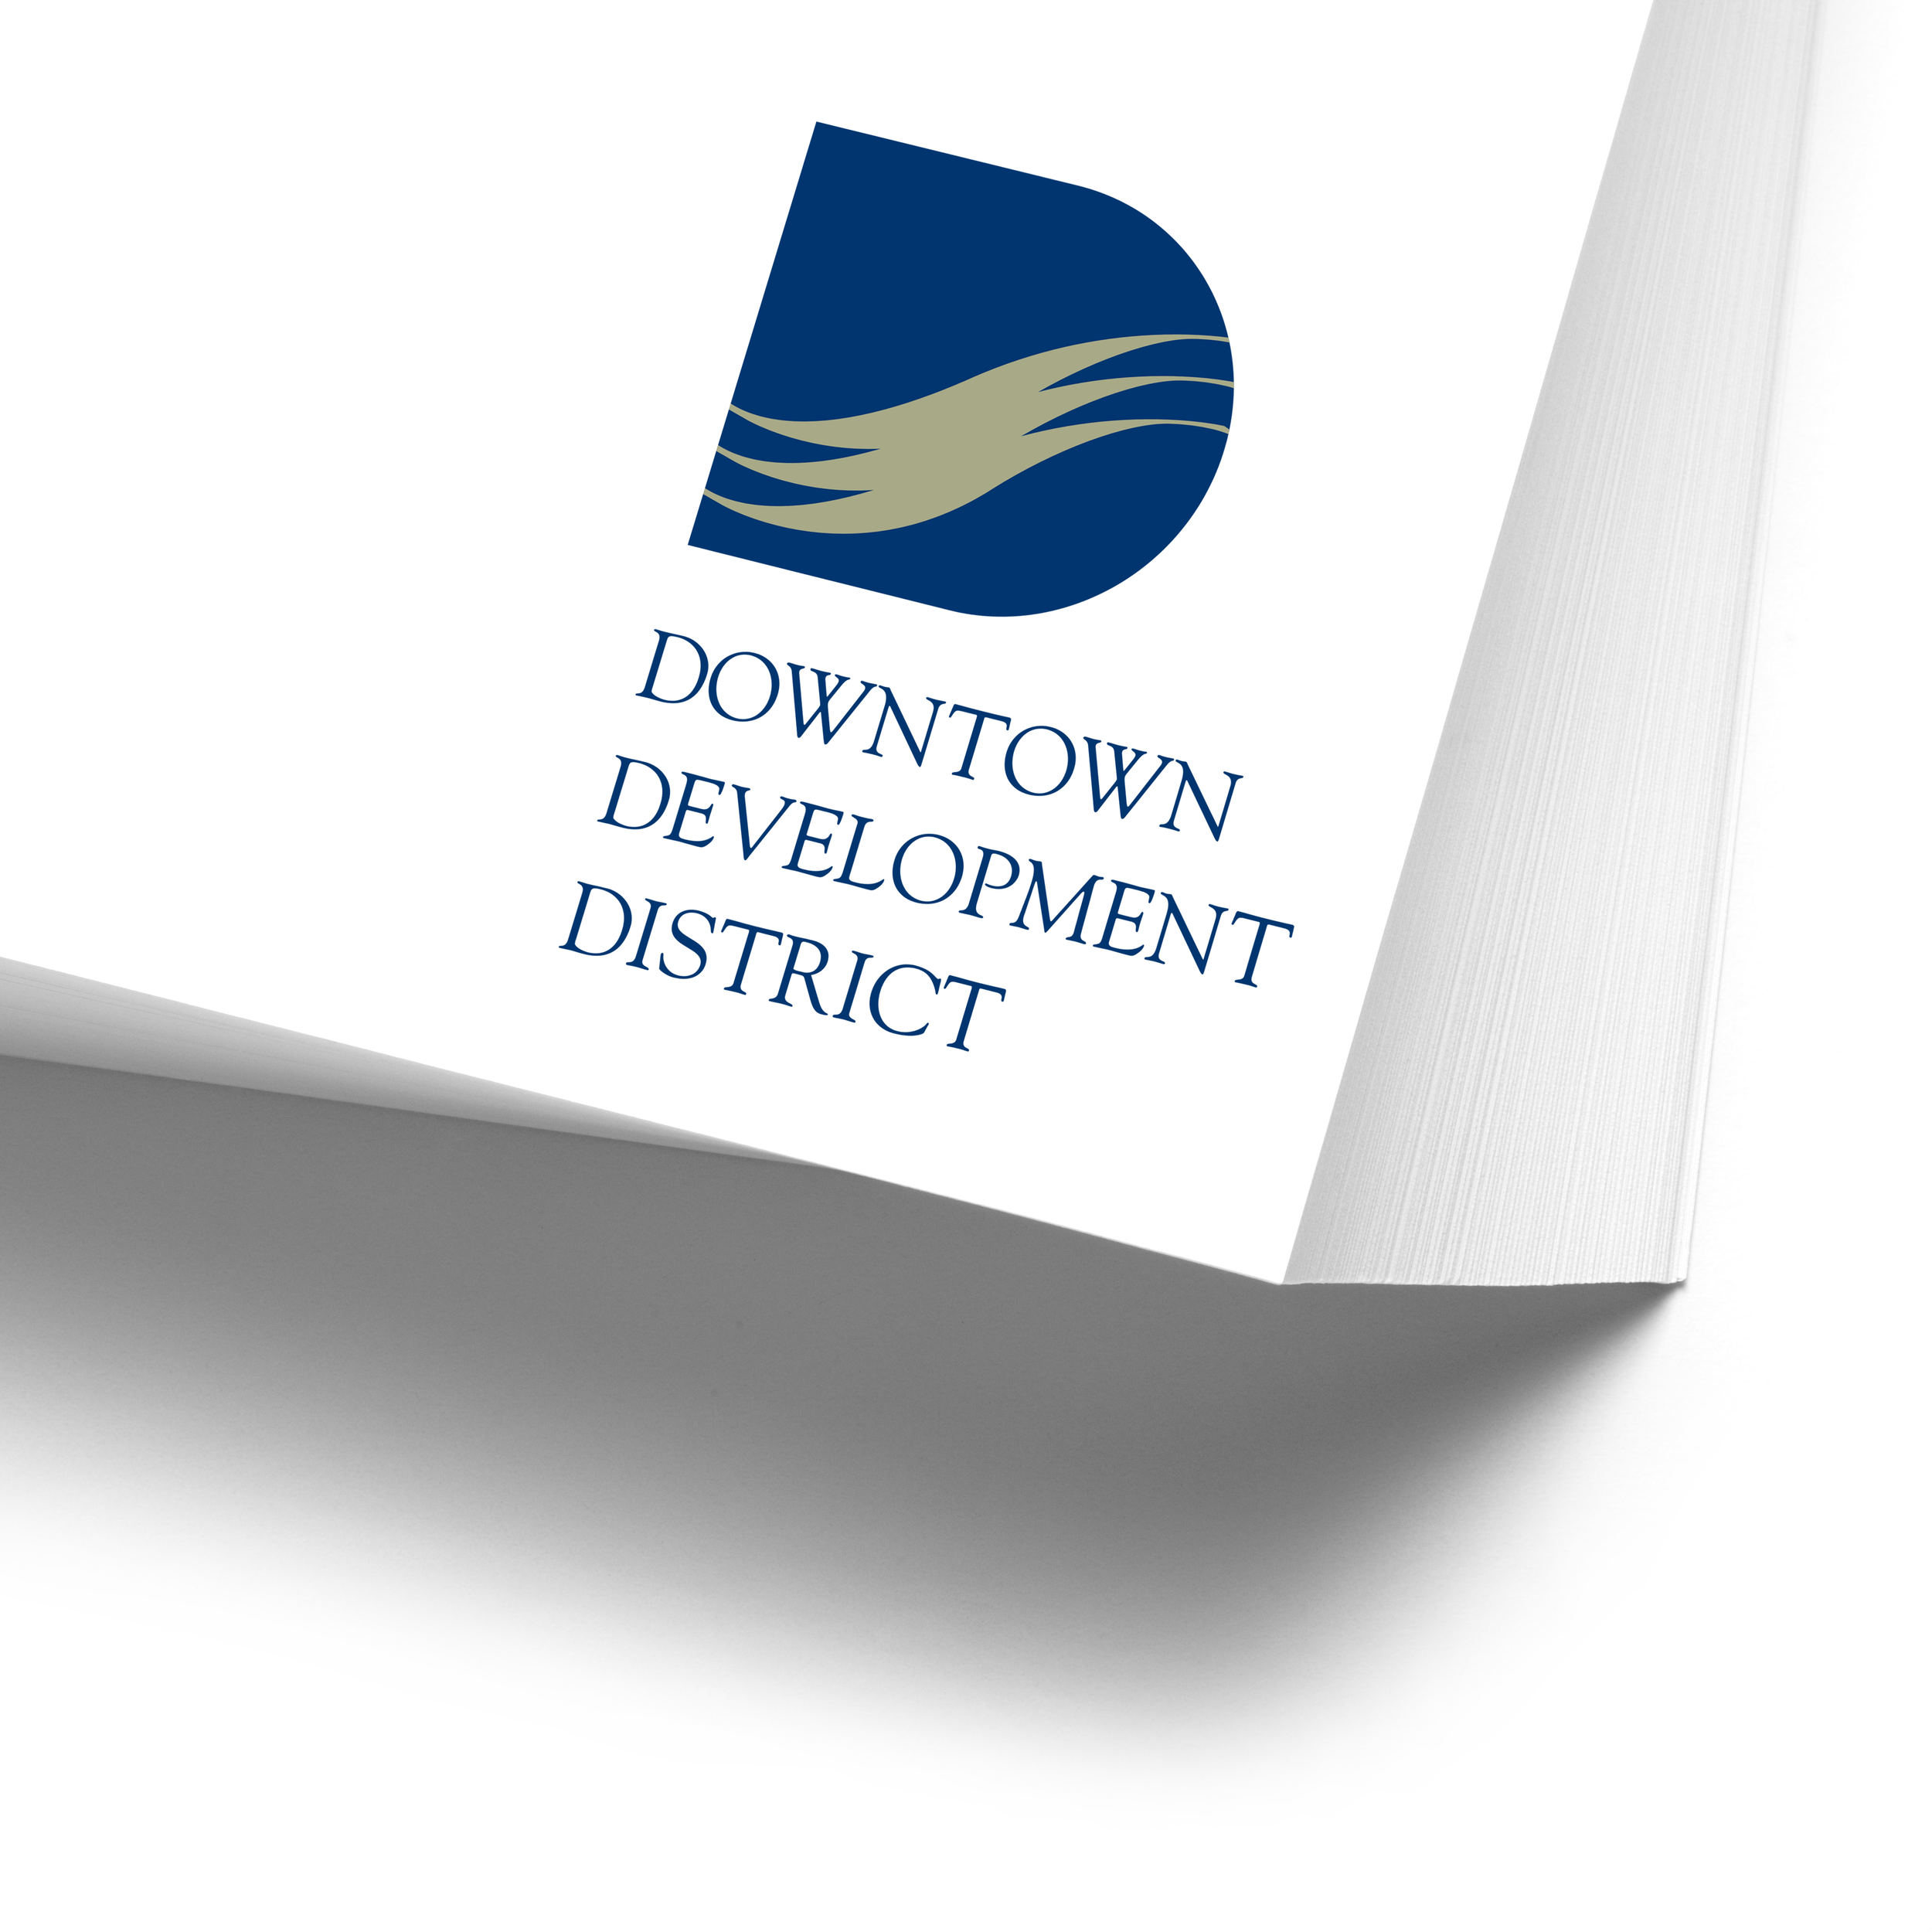 Logo Design for the Downtown Development District